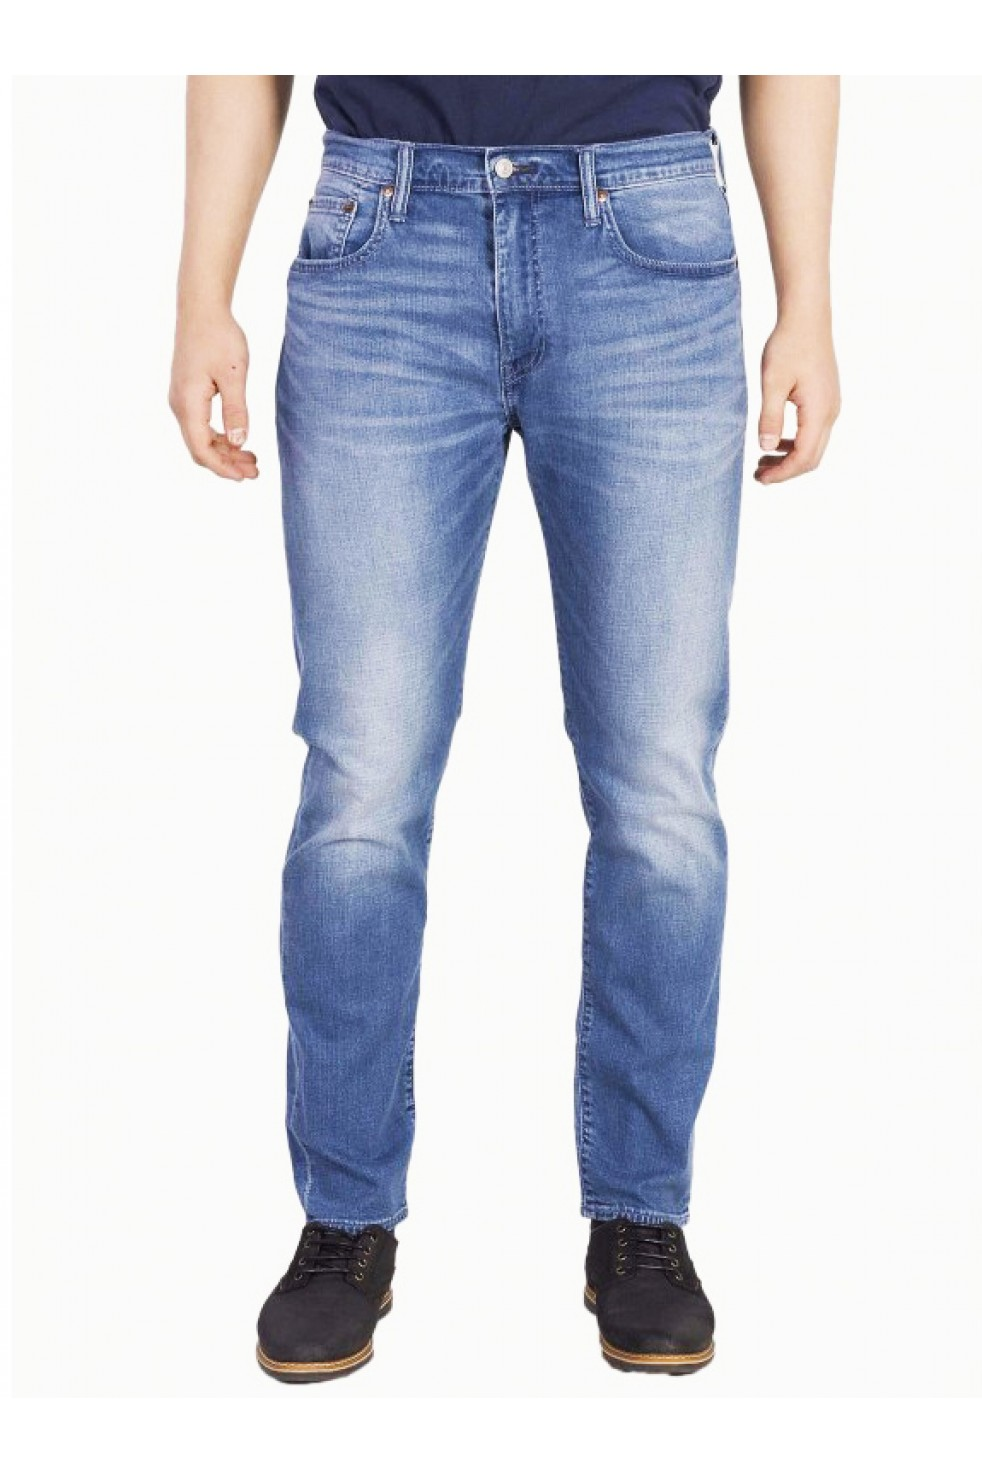 Levis Erkek Jean Pantolon 502 Regular Taper 29507-0173